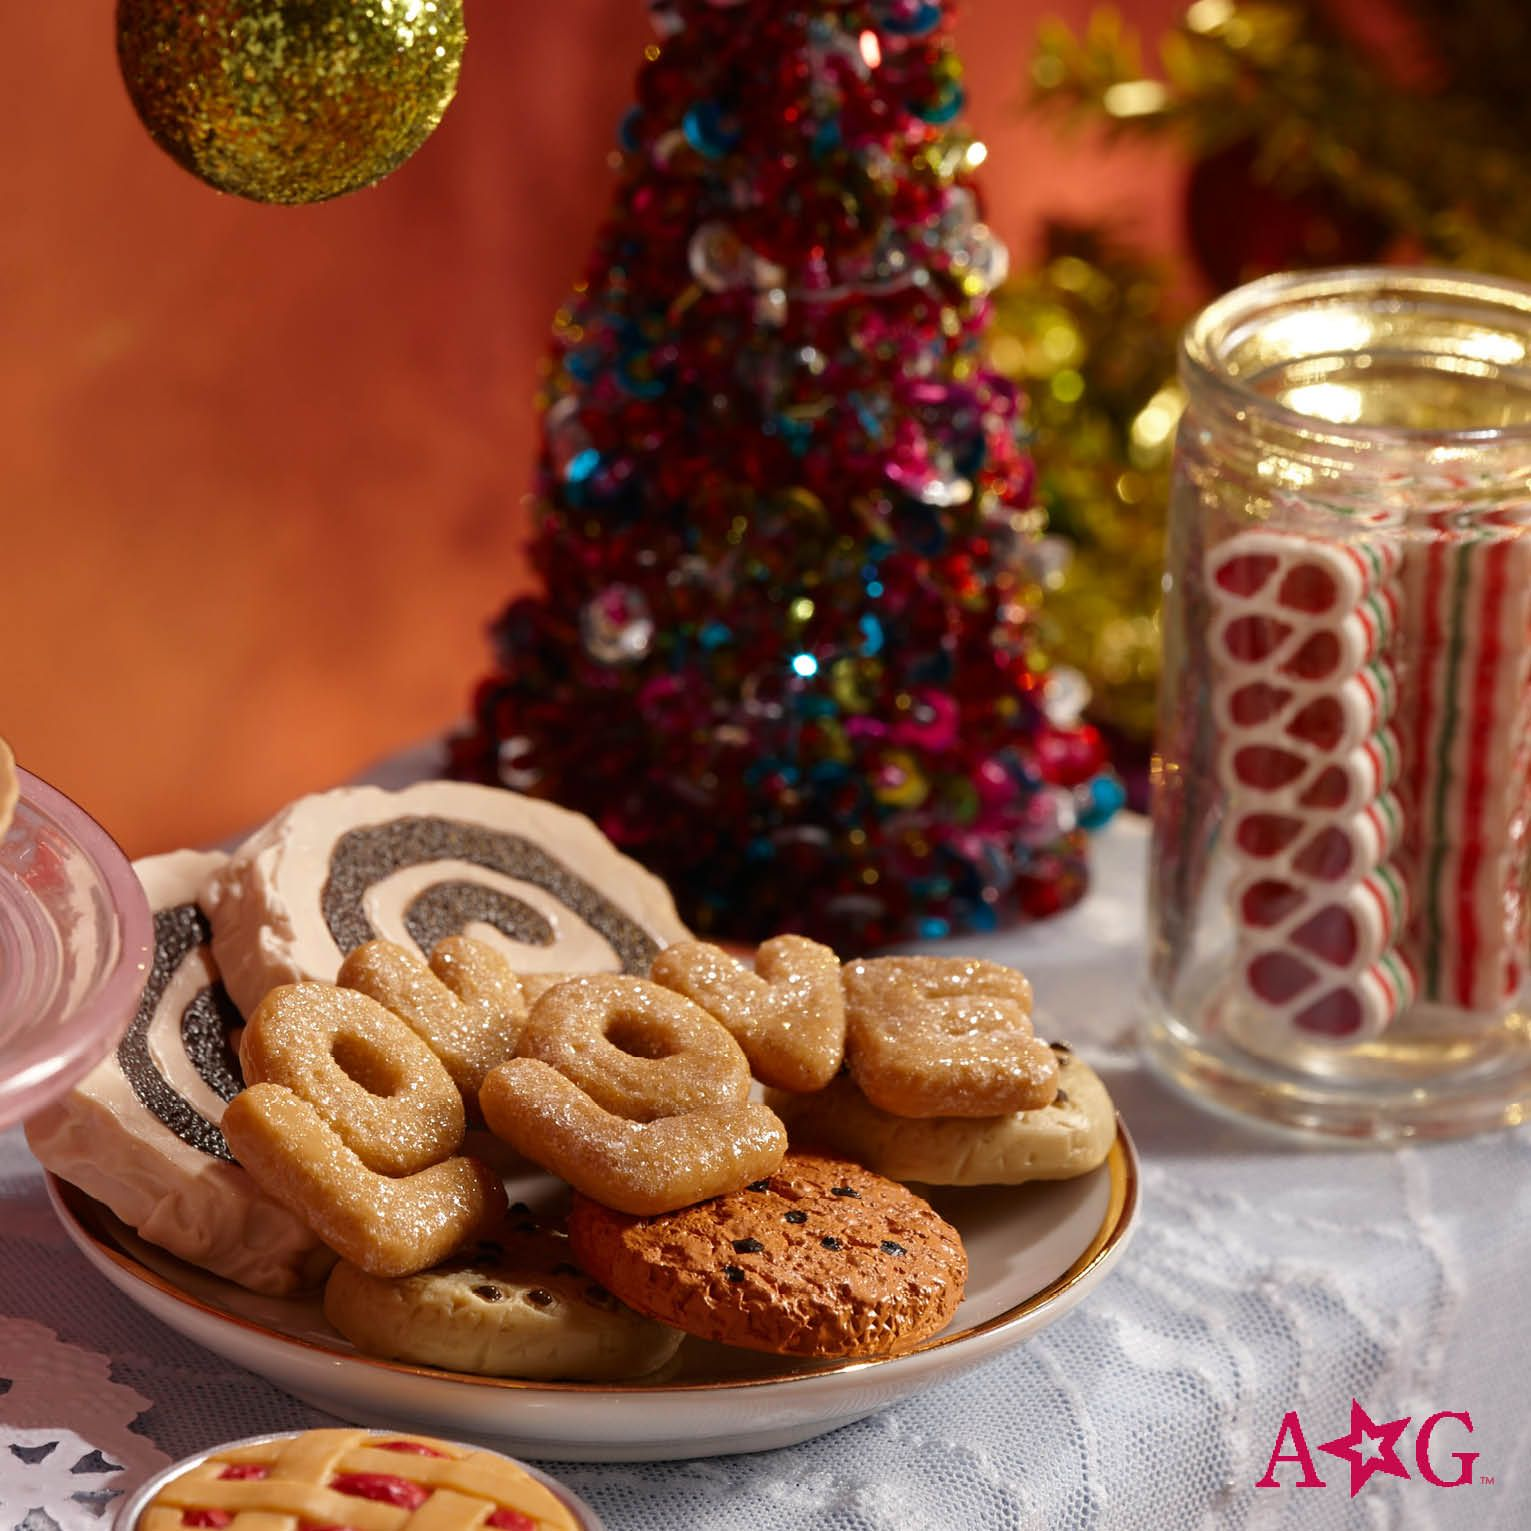 American girl doll food image by american girl on archive